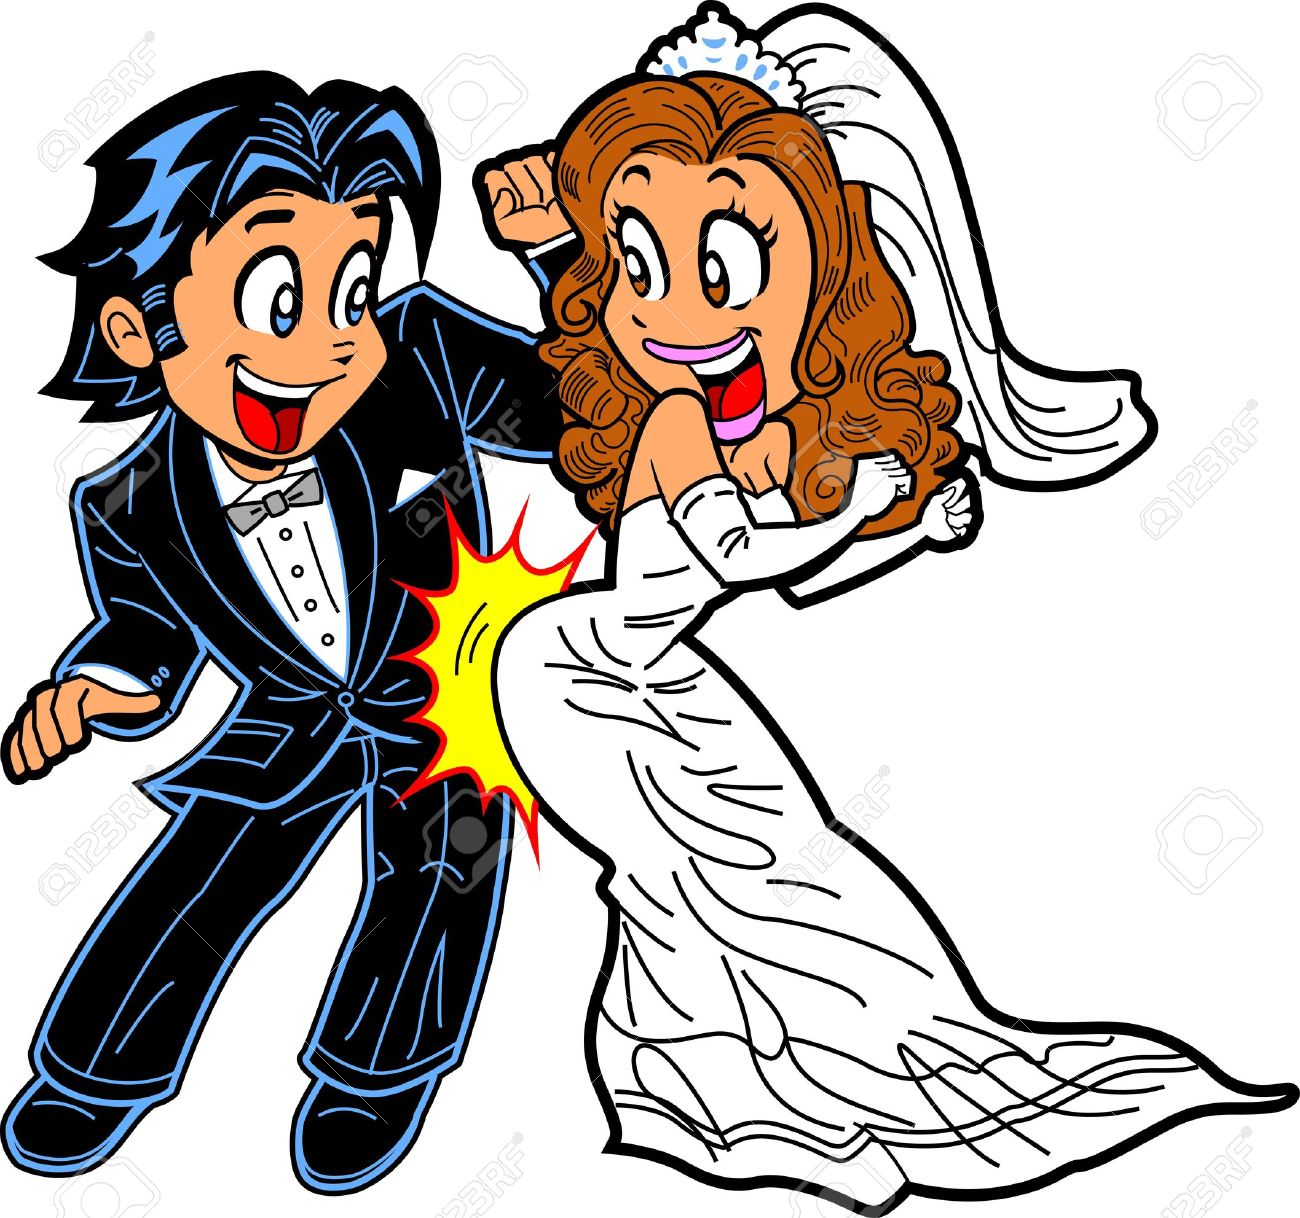 Happy Just Married Couple Doing The Wedd-Happy Just Married Couple Doing the Wedding Dance Stock Vector - 20686094-4